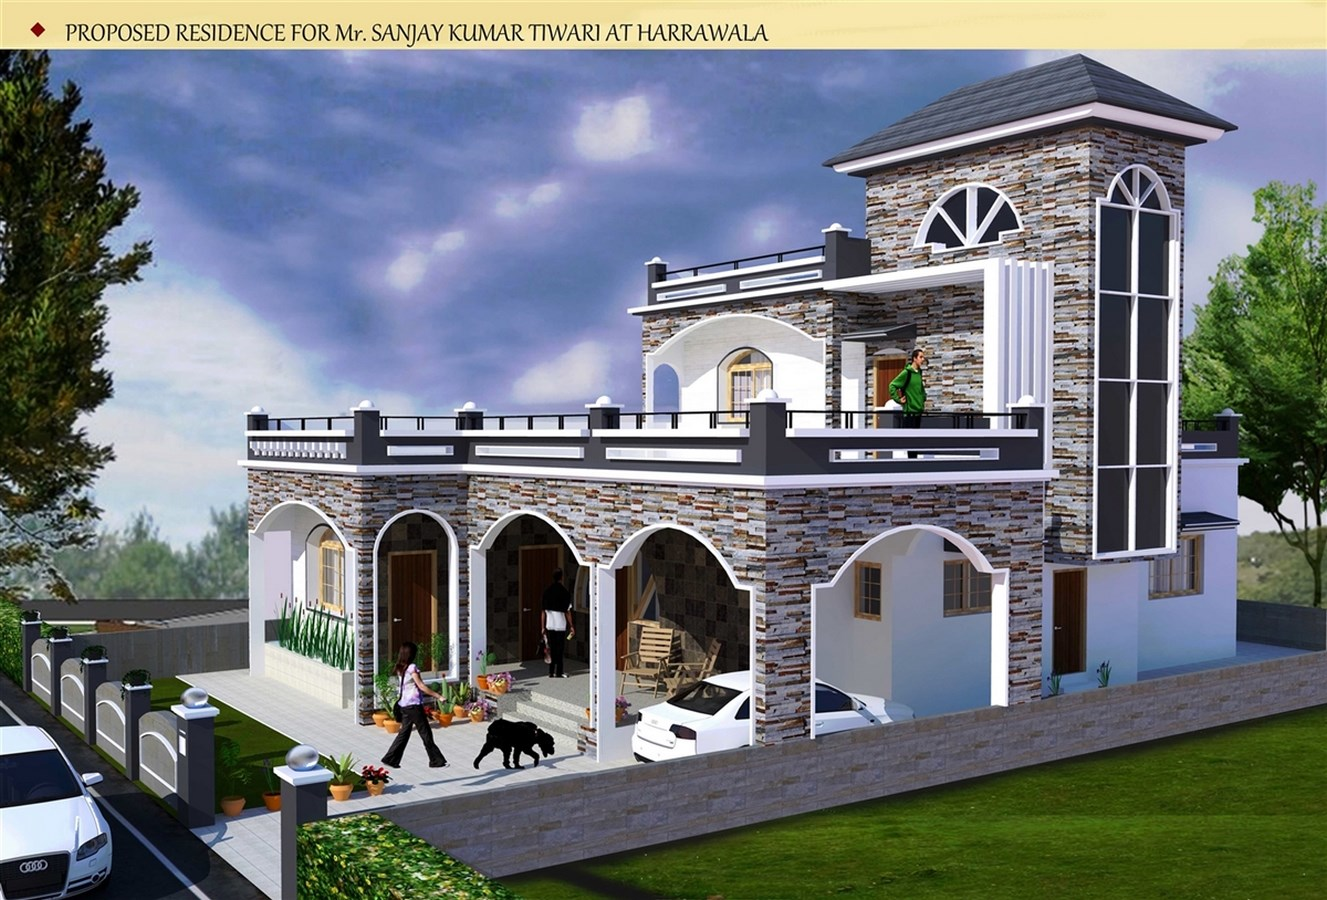 Top Architecture Firms in Dehradun India - Best Architects in Dehradun - Residence project, Harrawala by Design Studioc